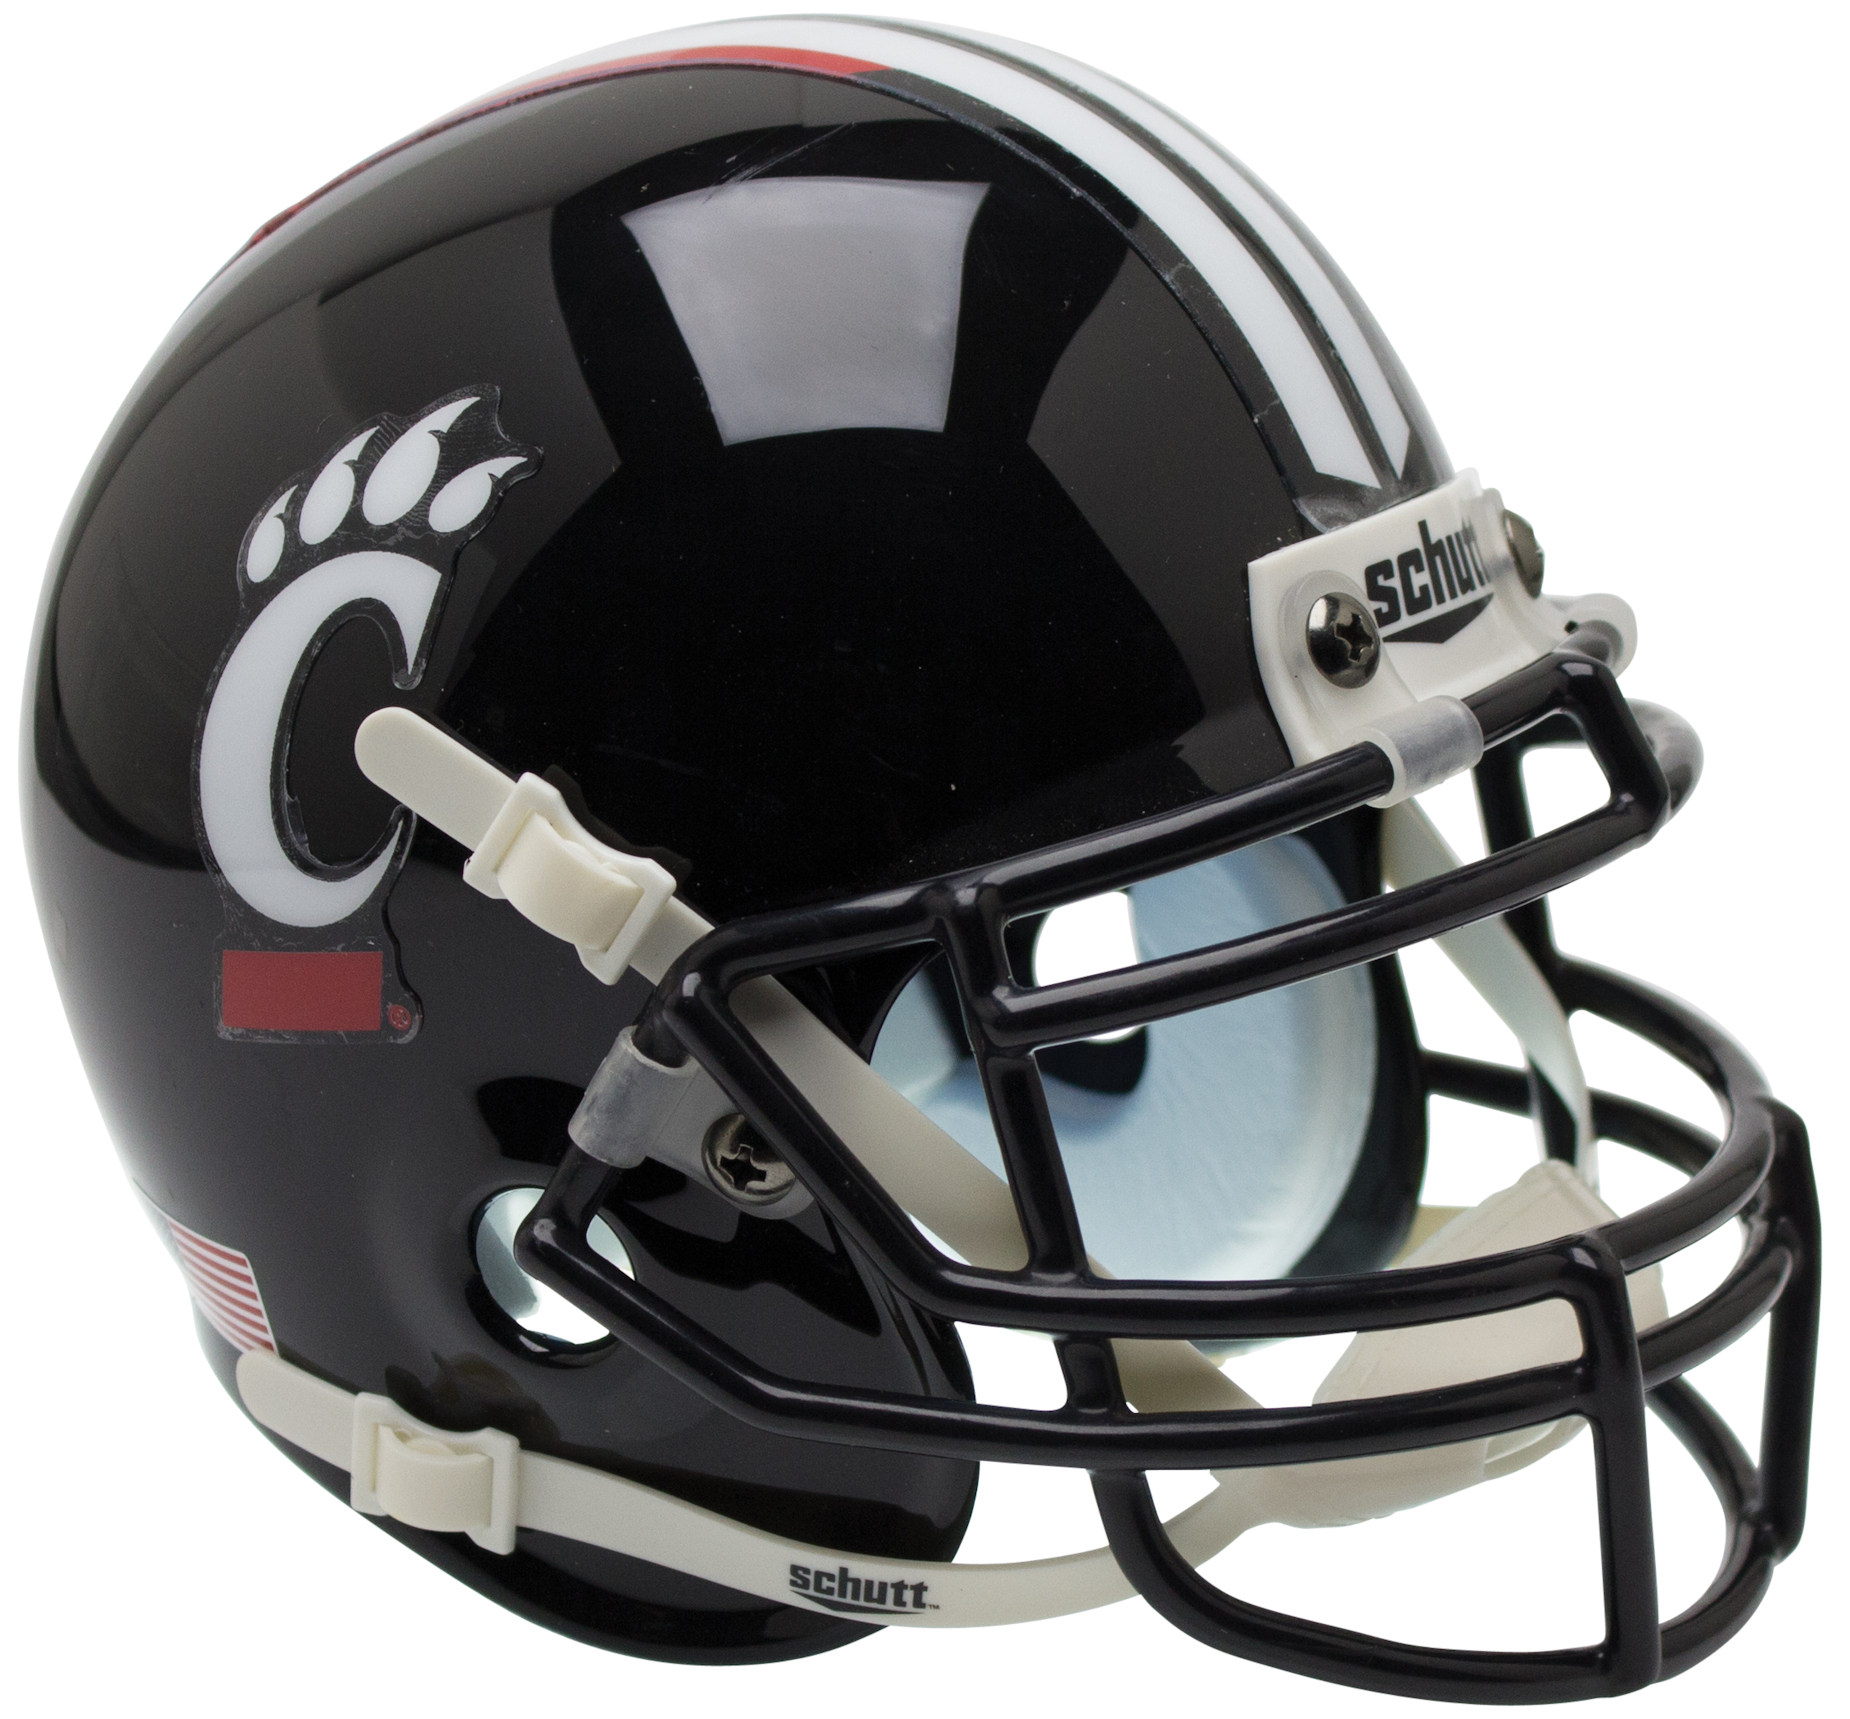 Cincinnati Bearcats Full XP Replica Football Helmet Schutt <B>Black</B>